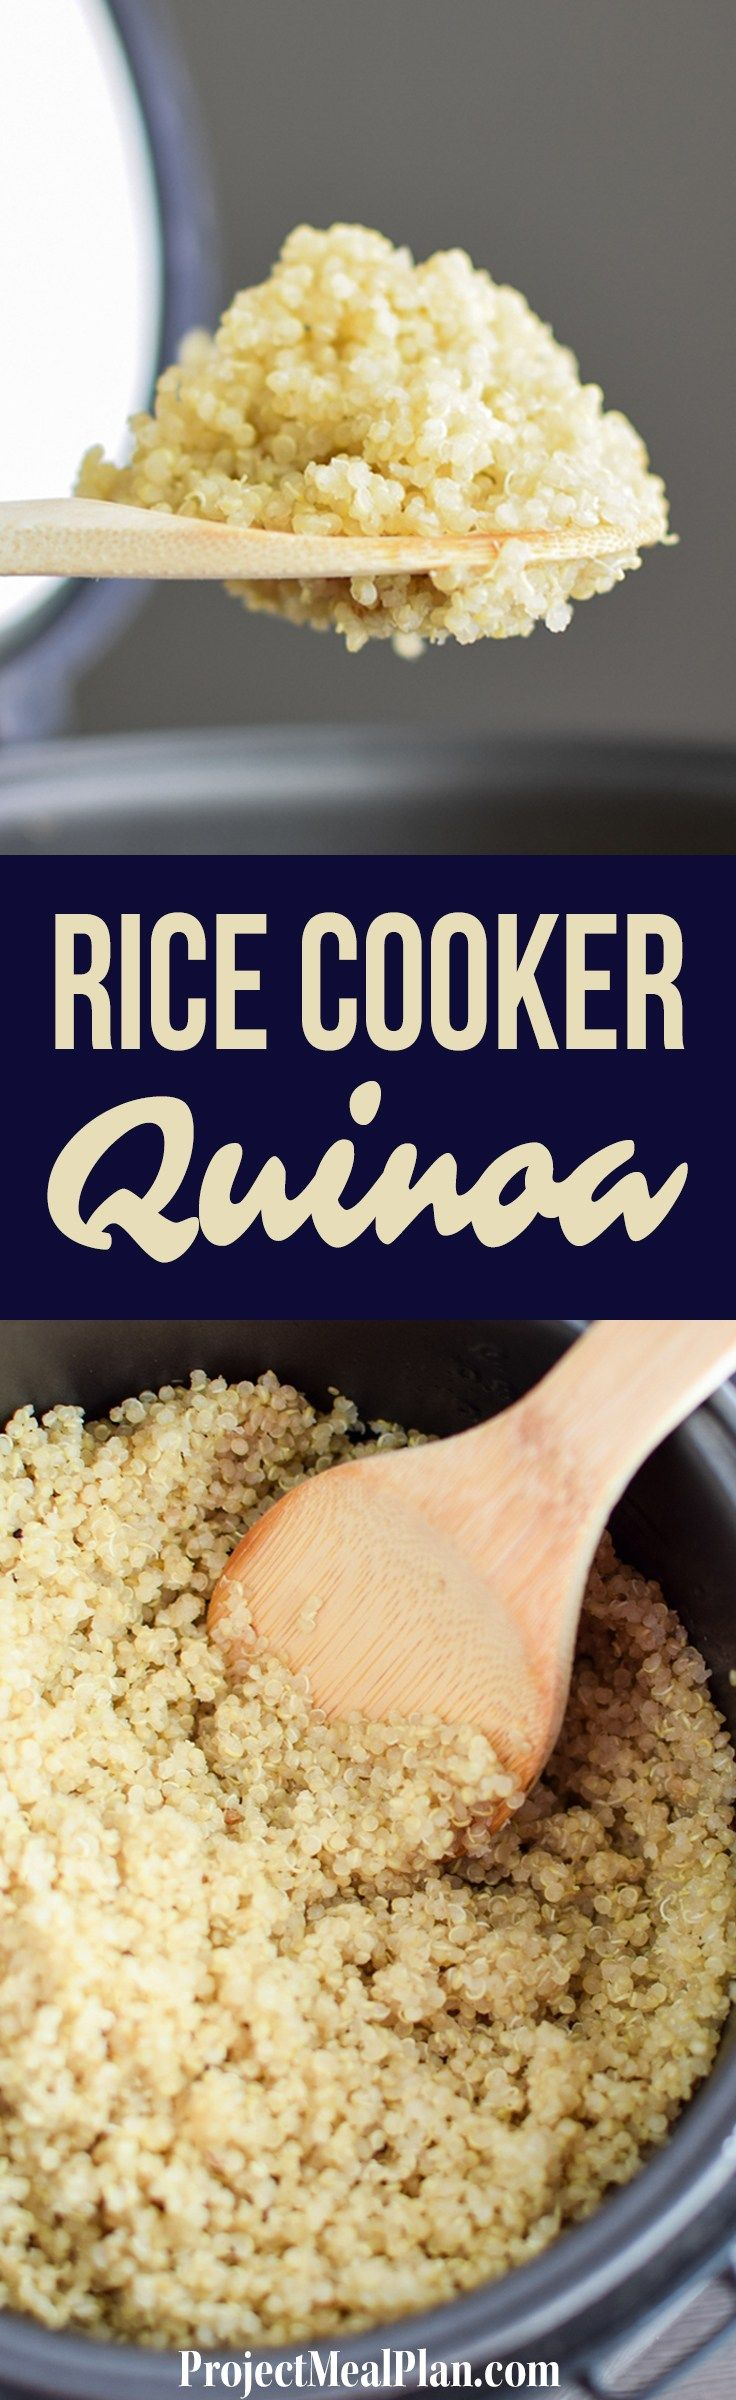 How To Cook Quinoa In The Rice Cooker